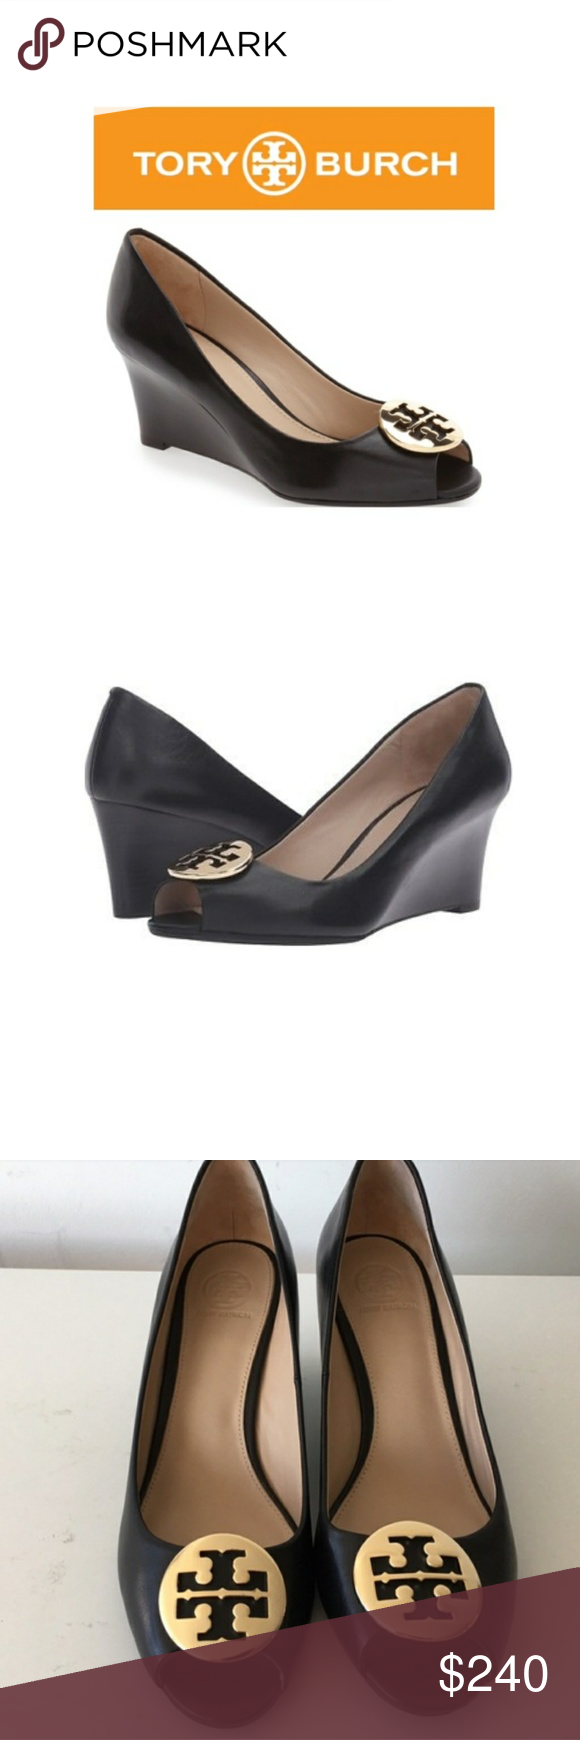 d6db46a5671d 7.5 Tory Burch Kara Wedge Pump Black 💕New in Box Trendy and also  comfortable shoe